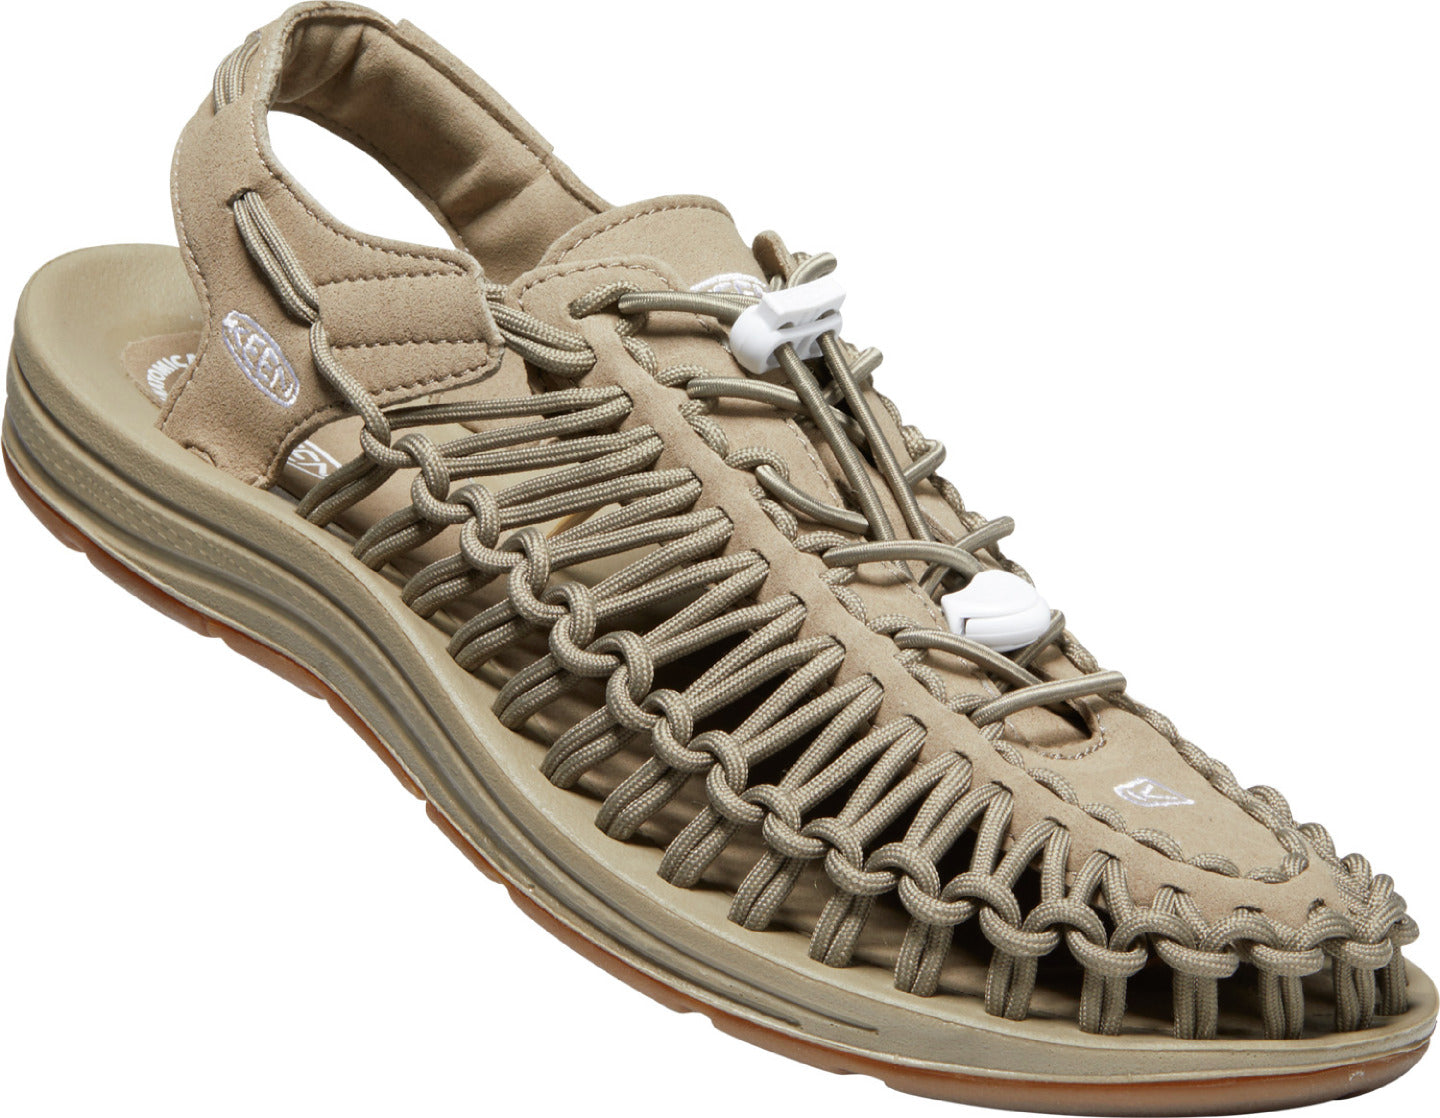 Men's KEEN Uneek Classic Two Cord Sandal in Timberwolf/Plaza Taupe from the front view